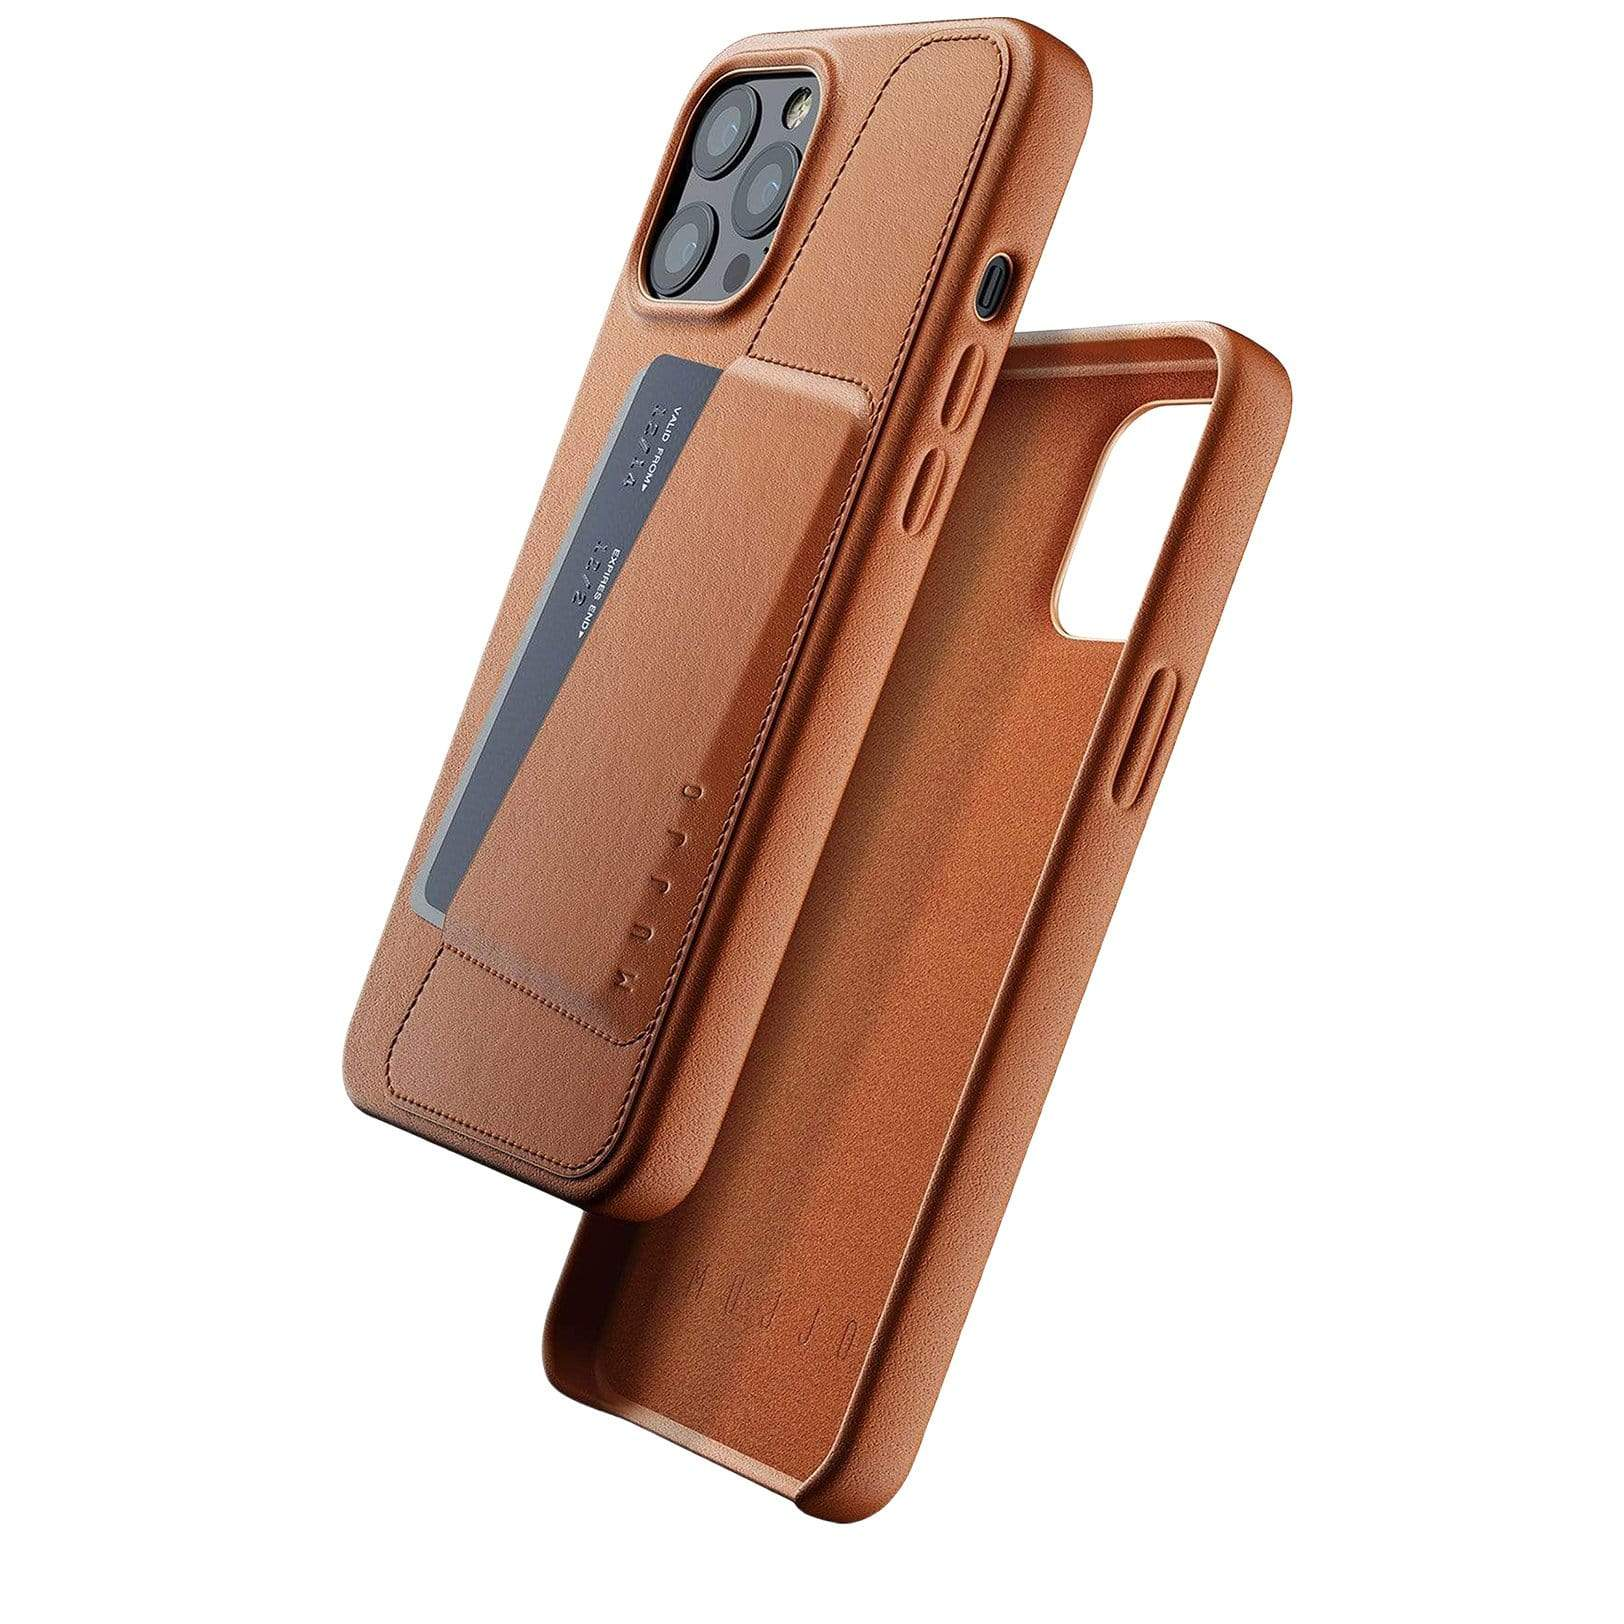 Full Leather Wallet Case for iPhone 12 Pro Max - Tan